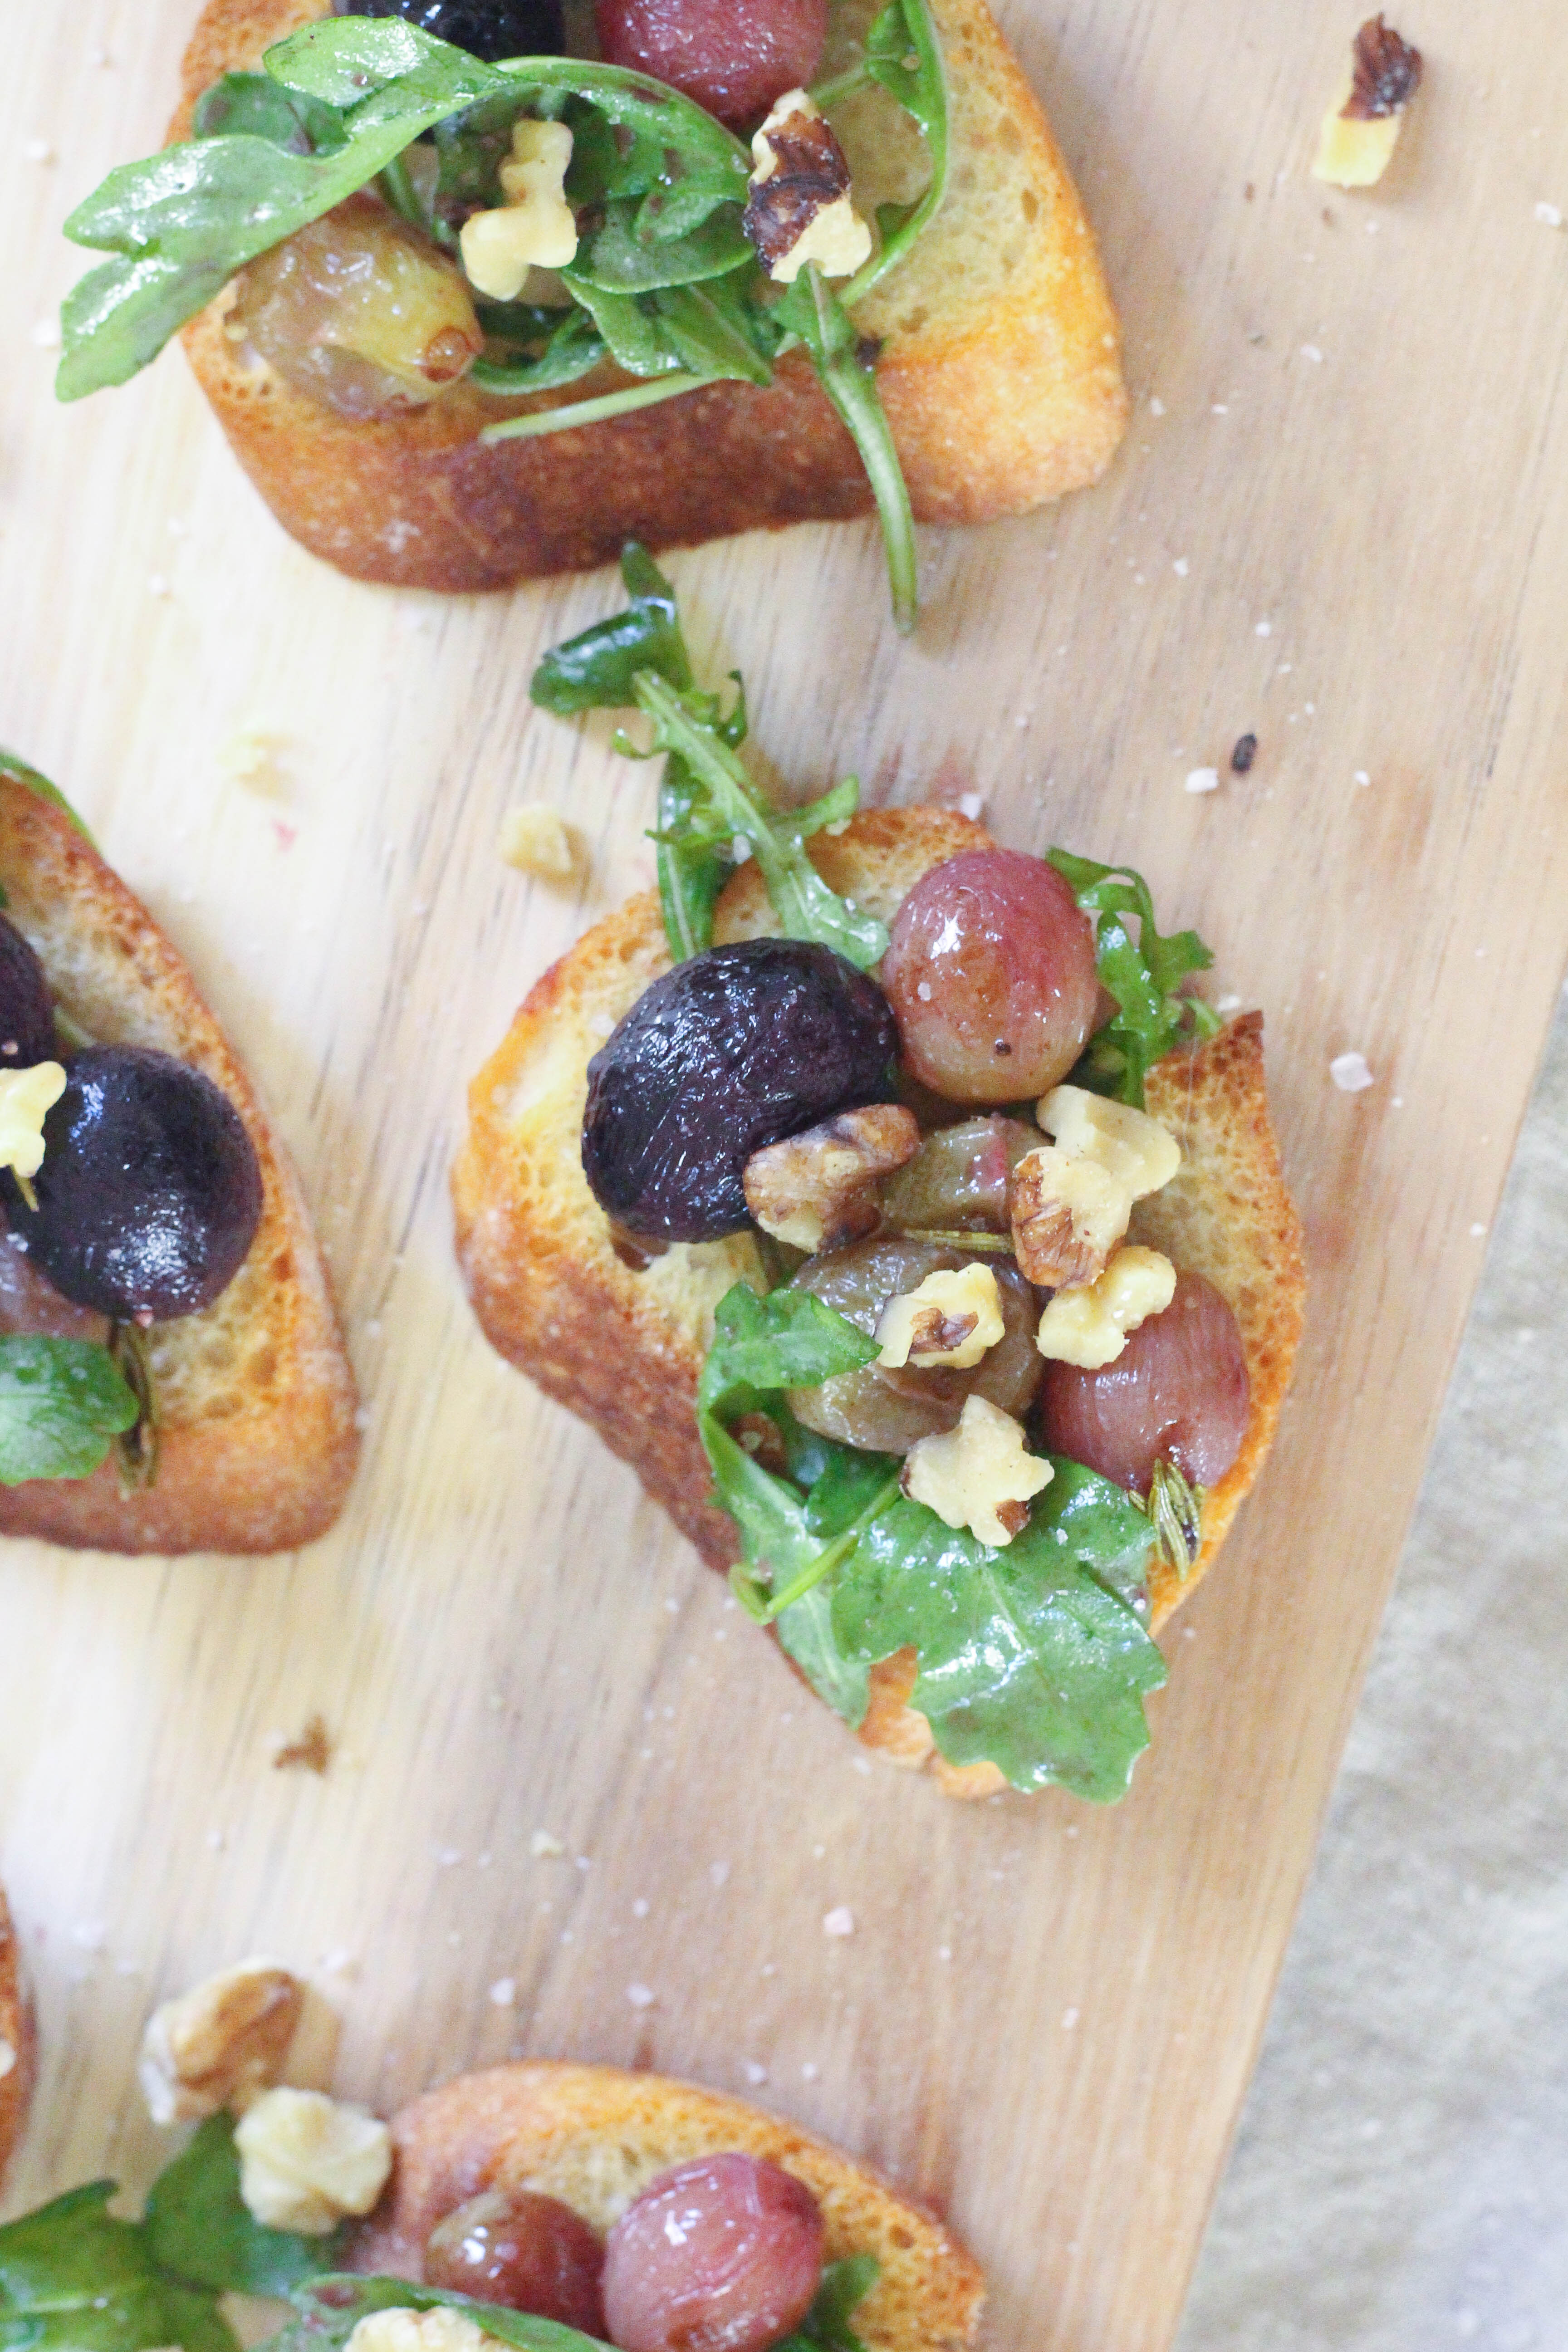 Rosemary roasted grapes on garlic crostini with wilted arugula and ...